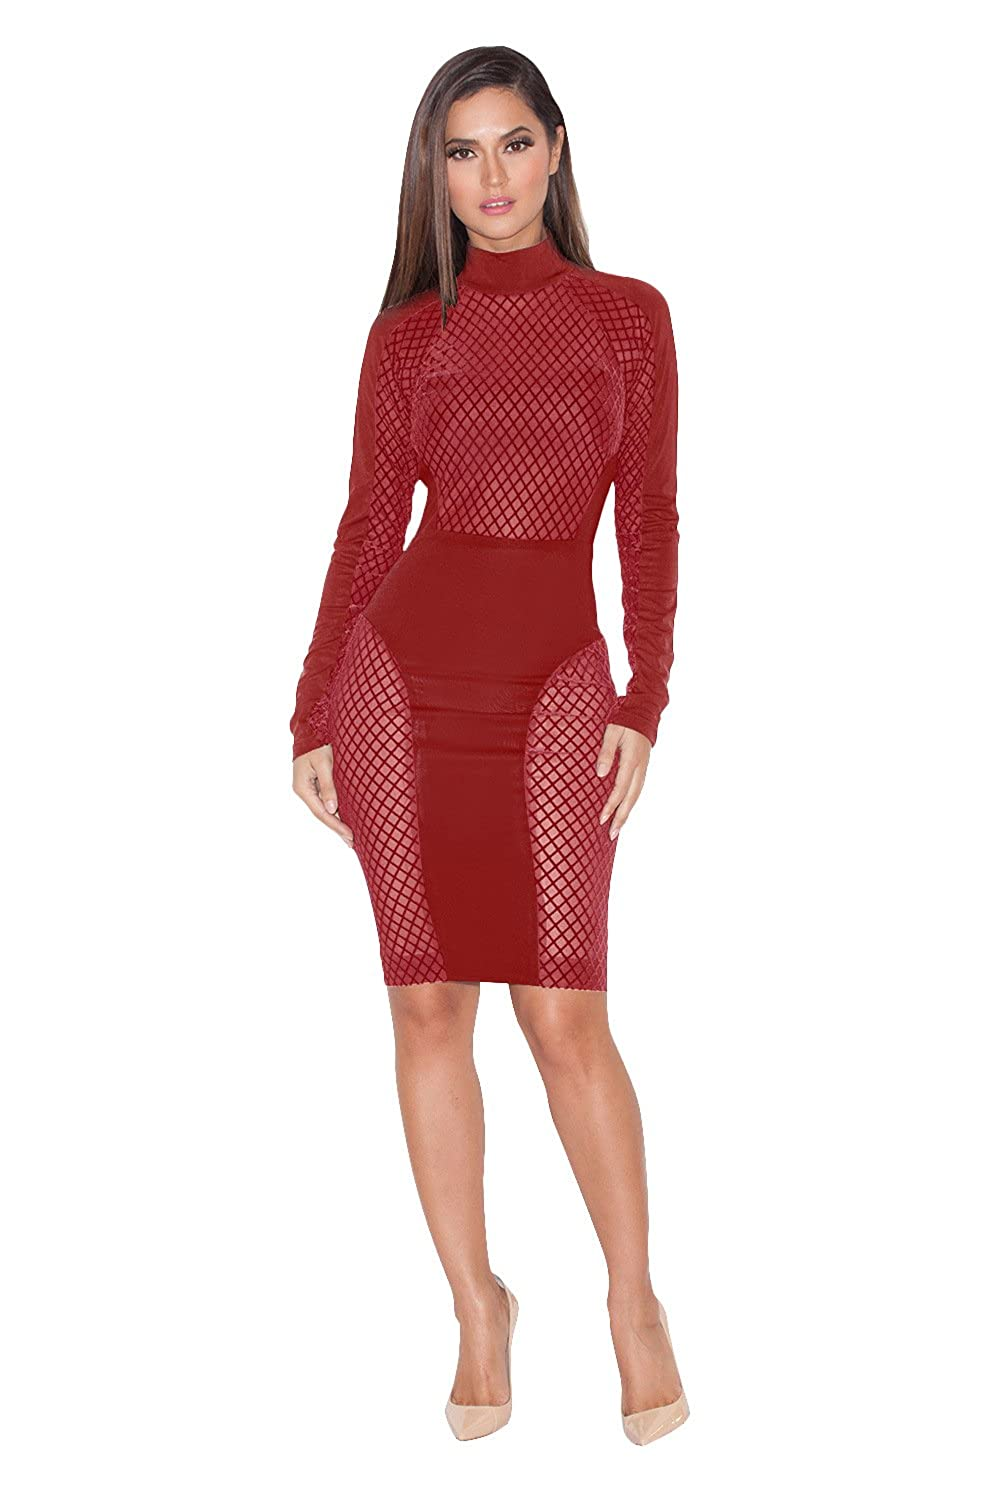 Amever Women's Sexy Dress Hollow Out Sexy Bodycon High Neck Bandage Club Party Dress Clubwear